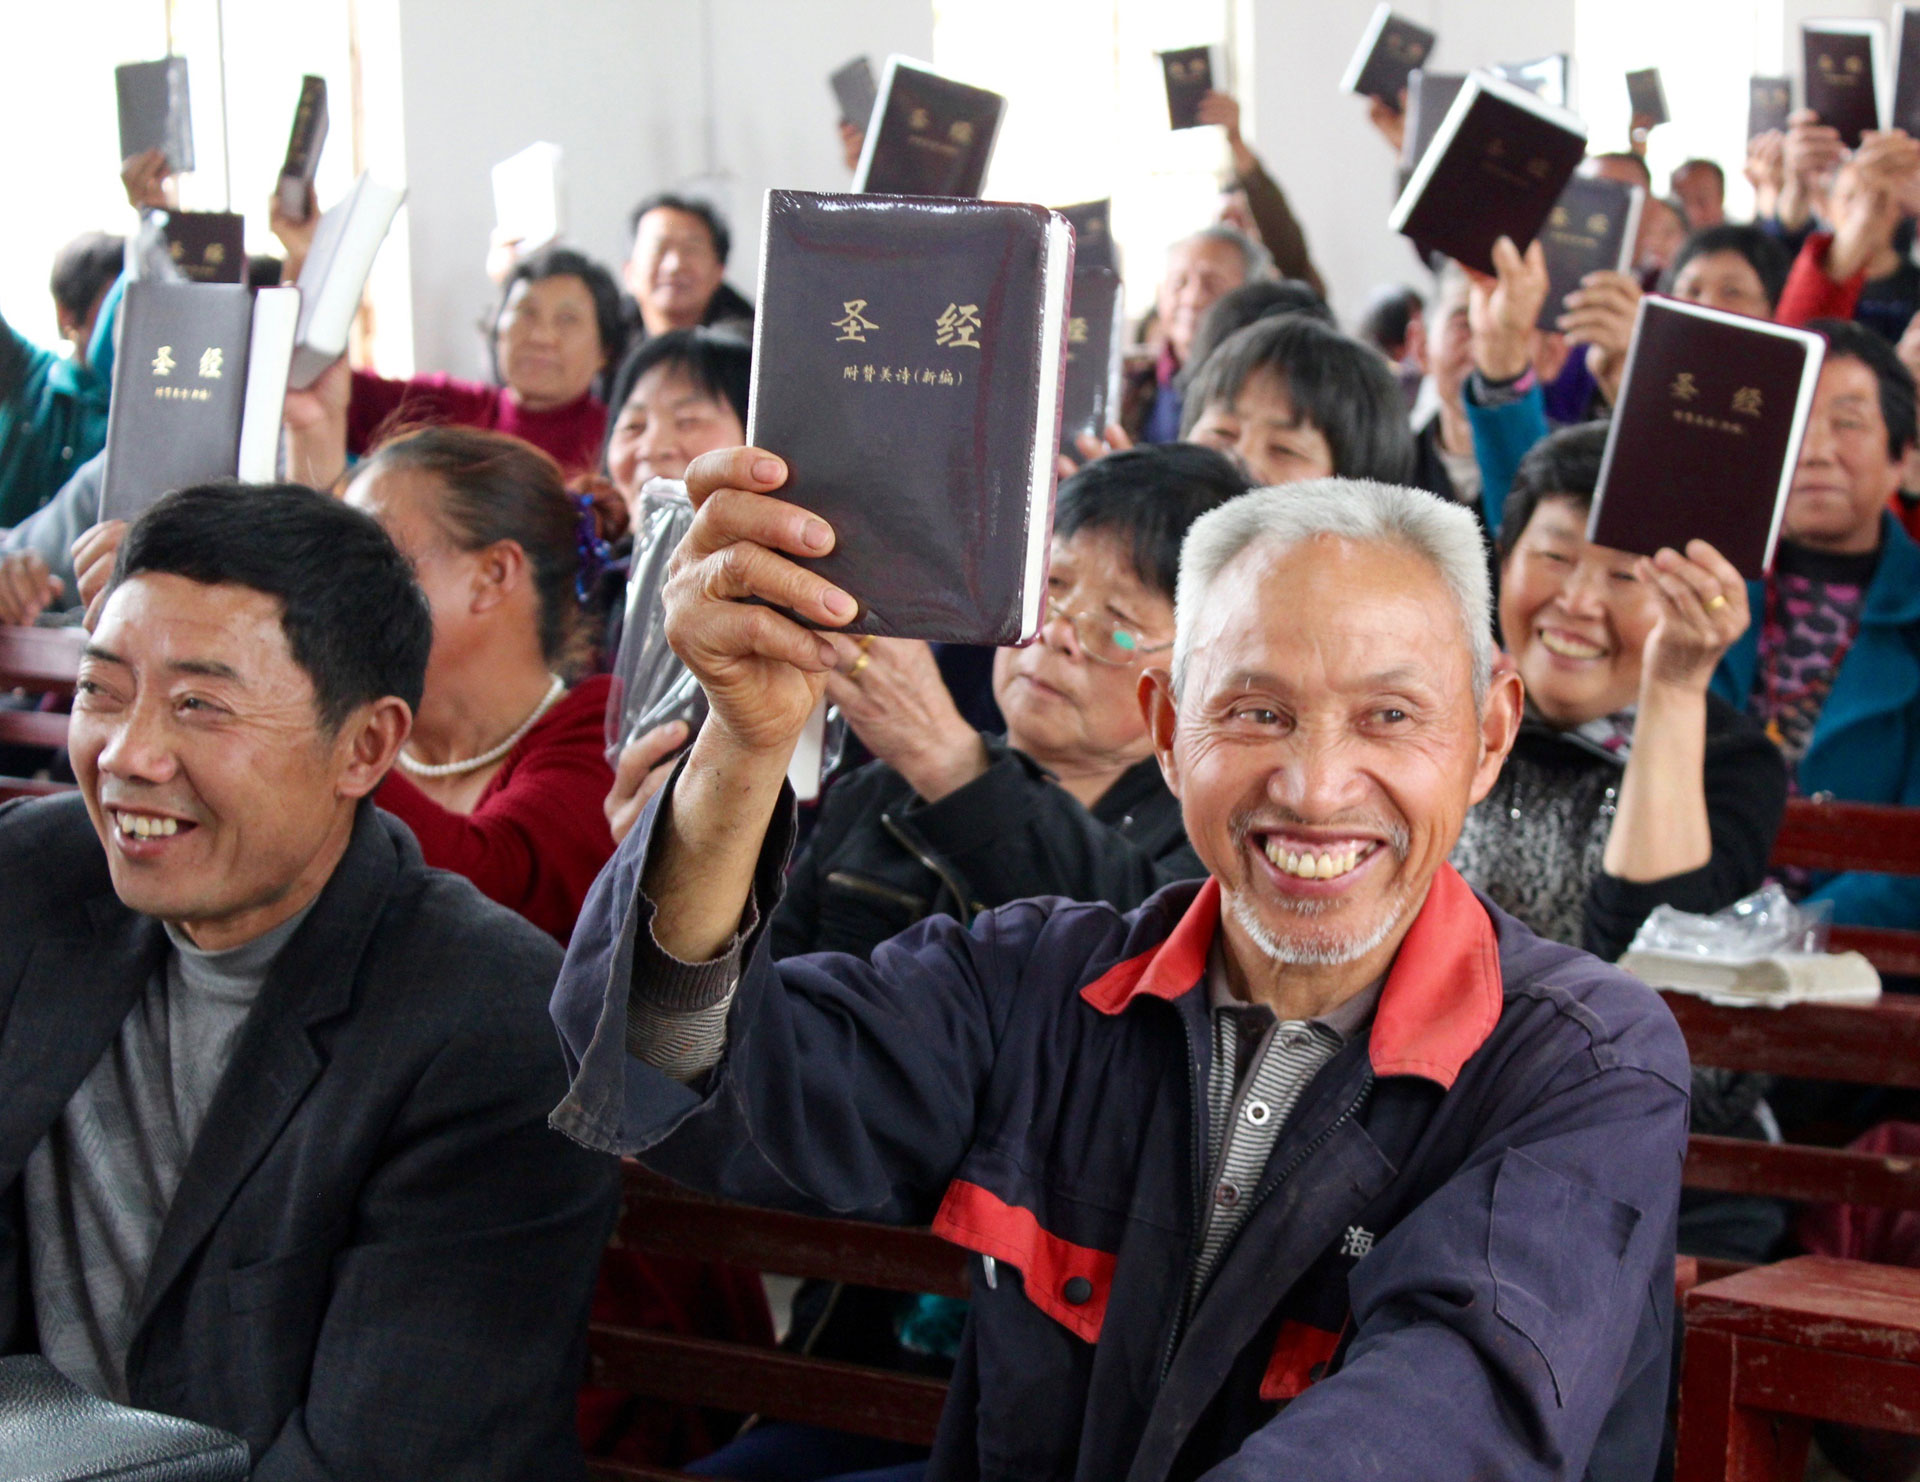 China Ramps Up campaign against religious freedom